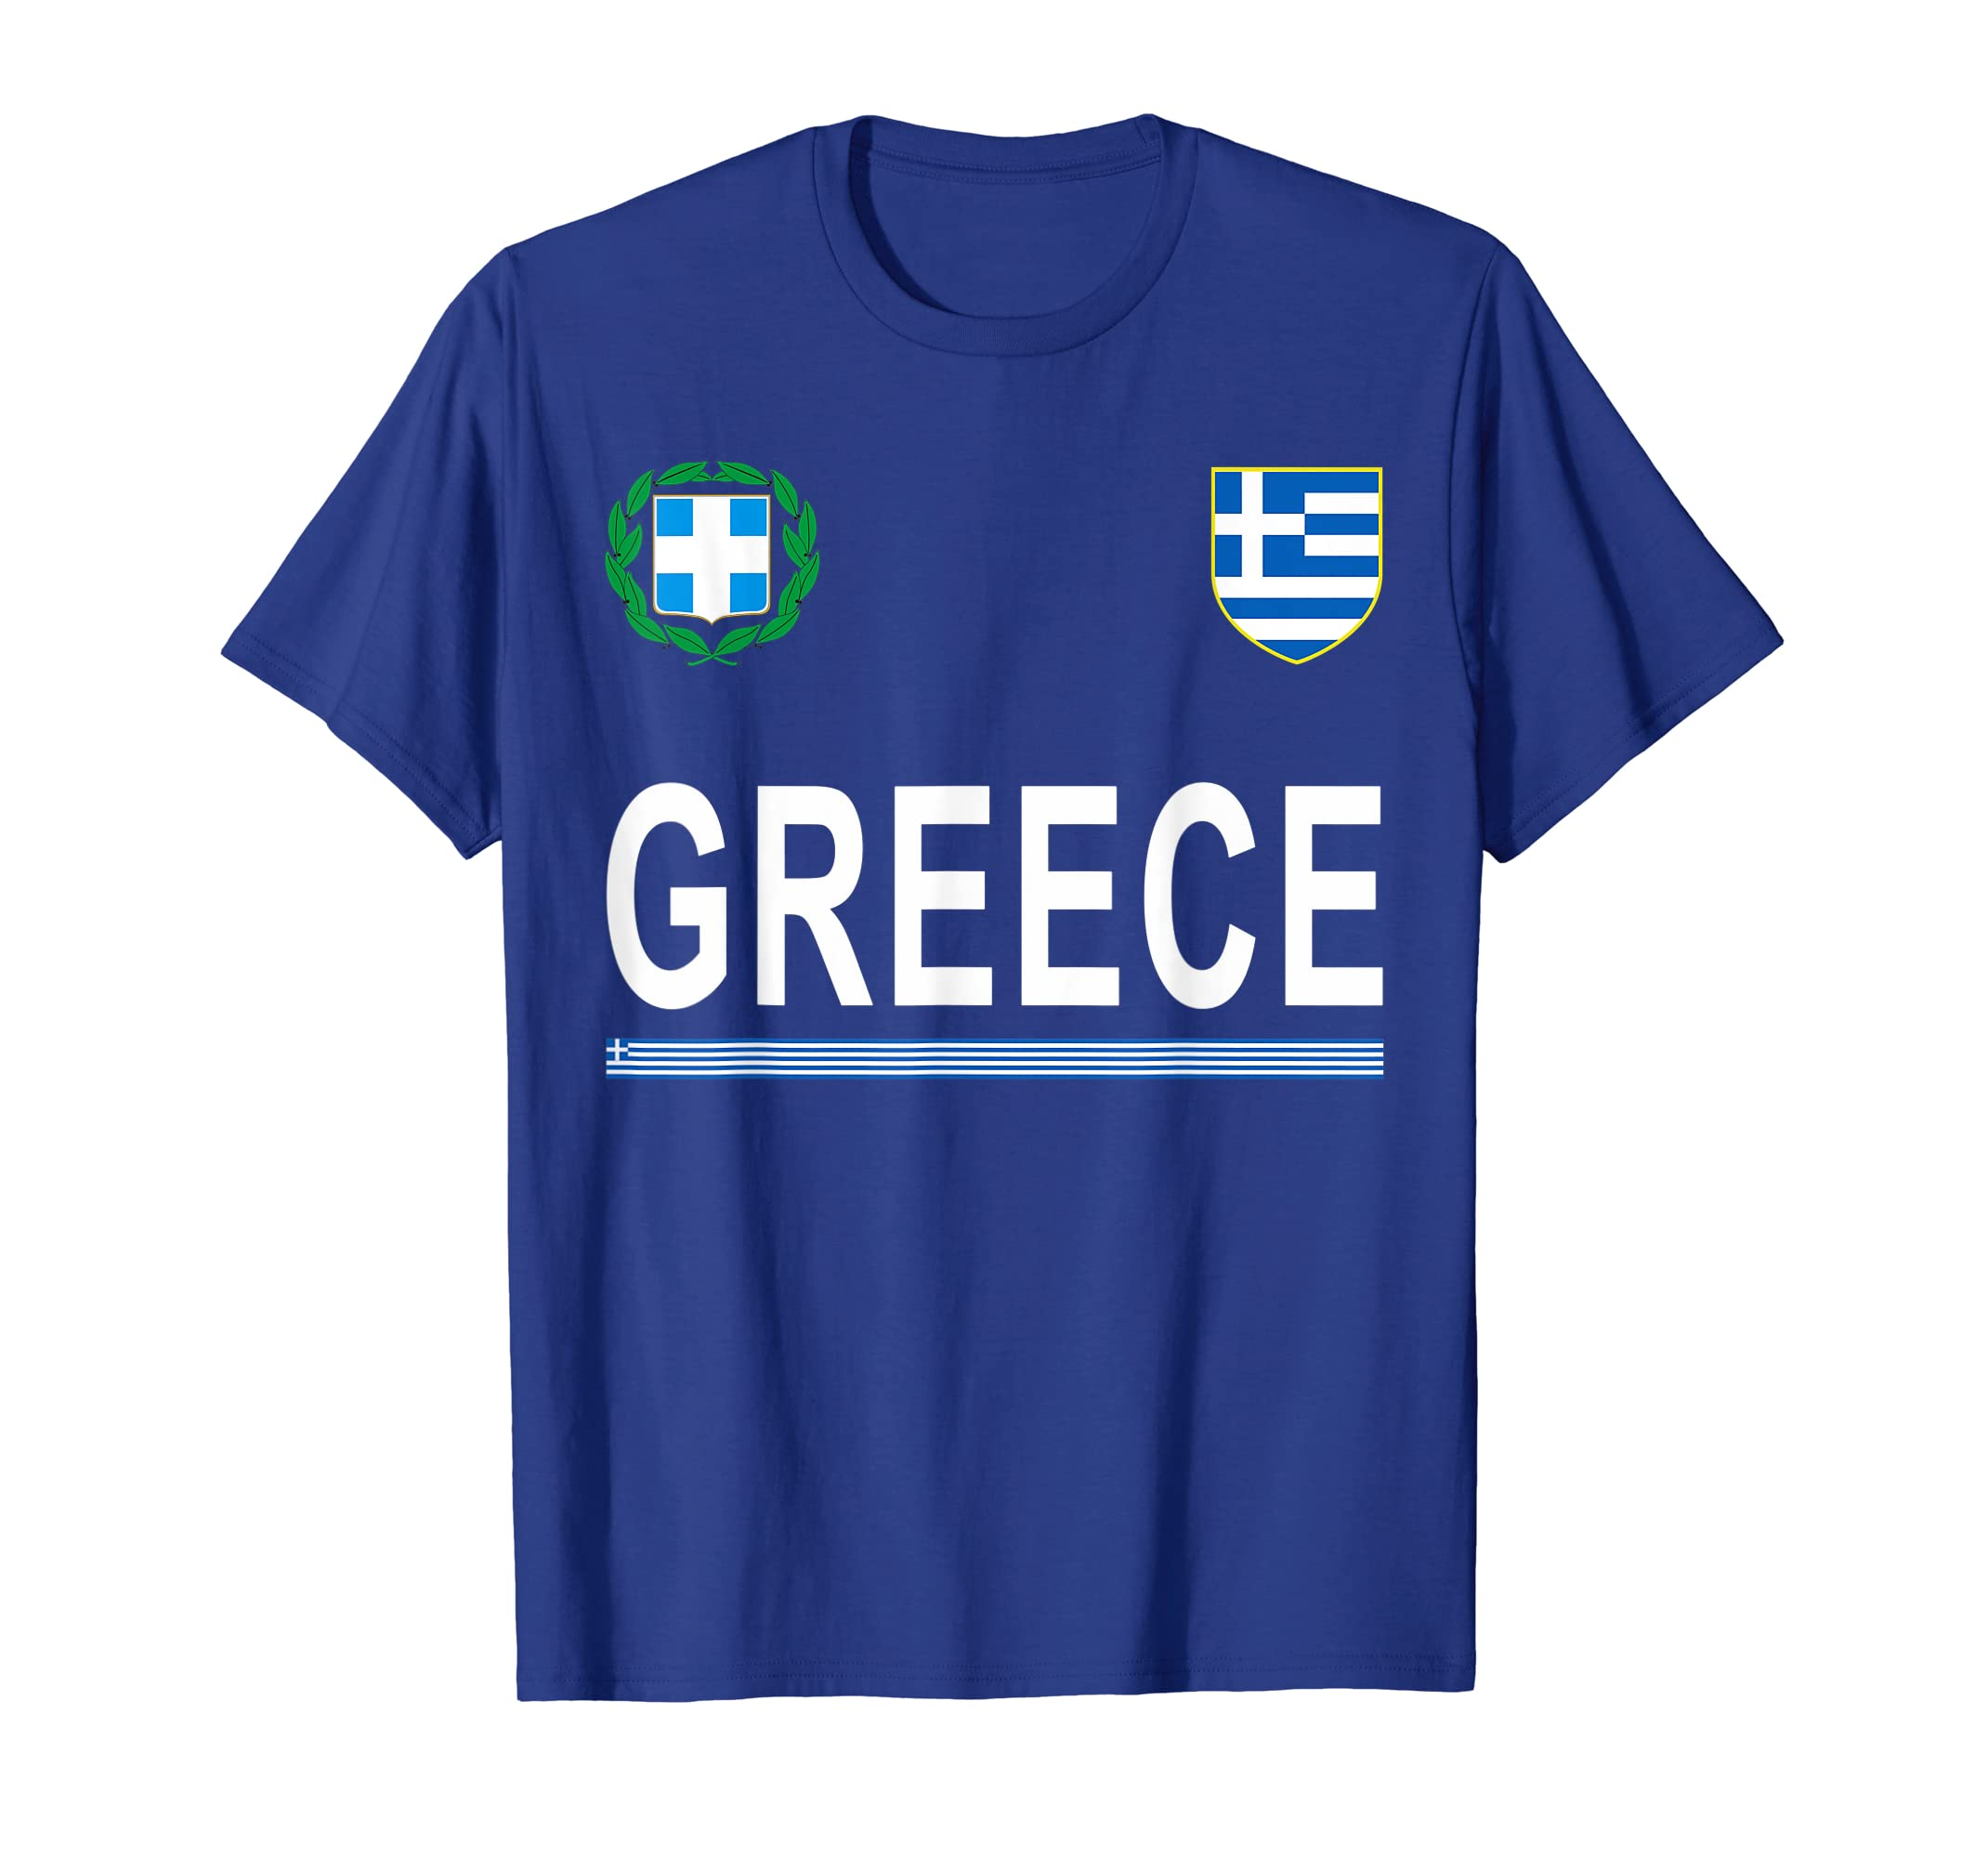 online store 2ad30 952fa Amazon.com: Greece Soccer National Team T-Shirt - Greek ...